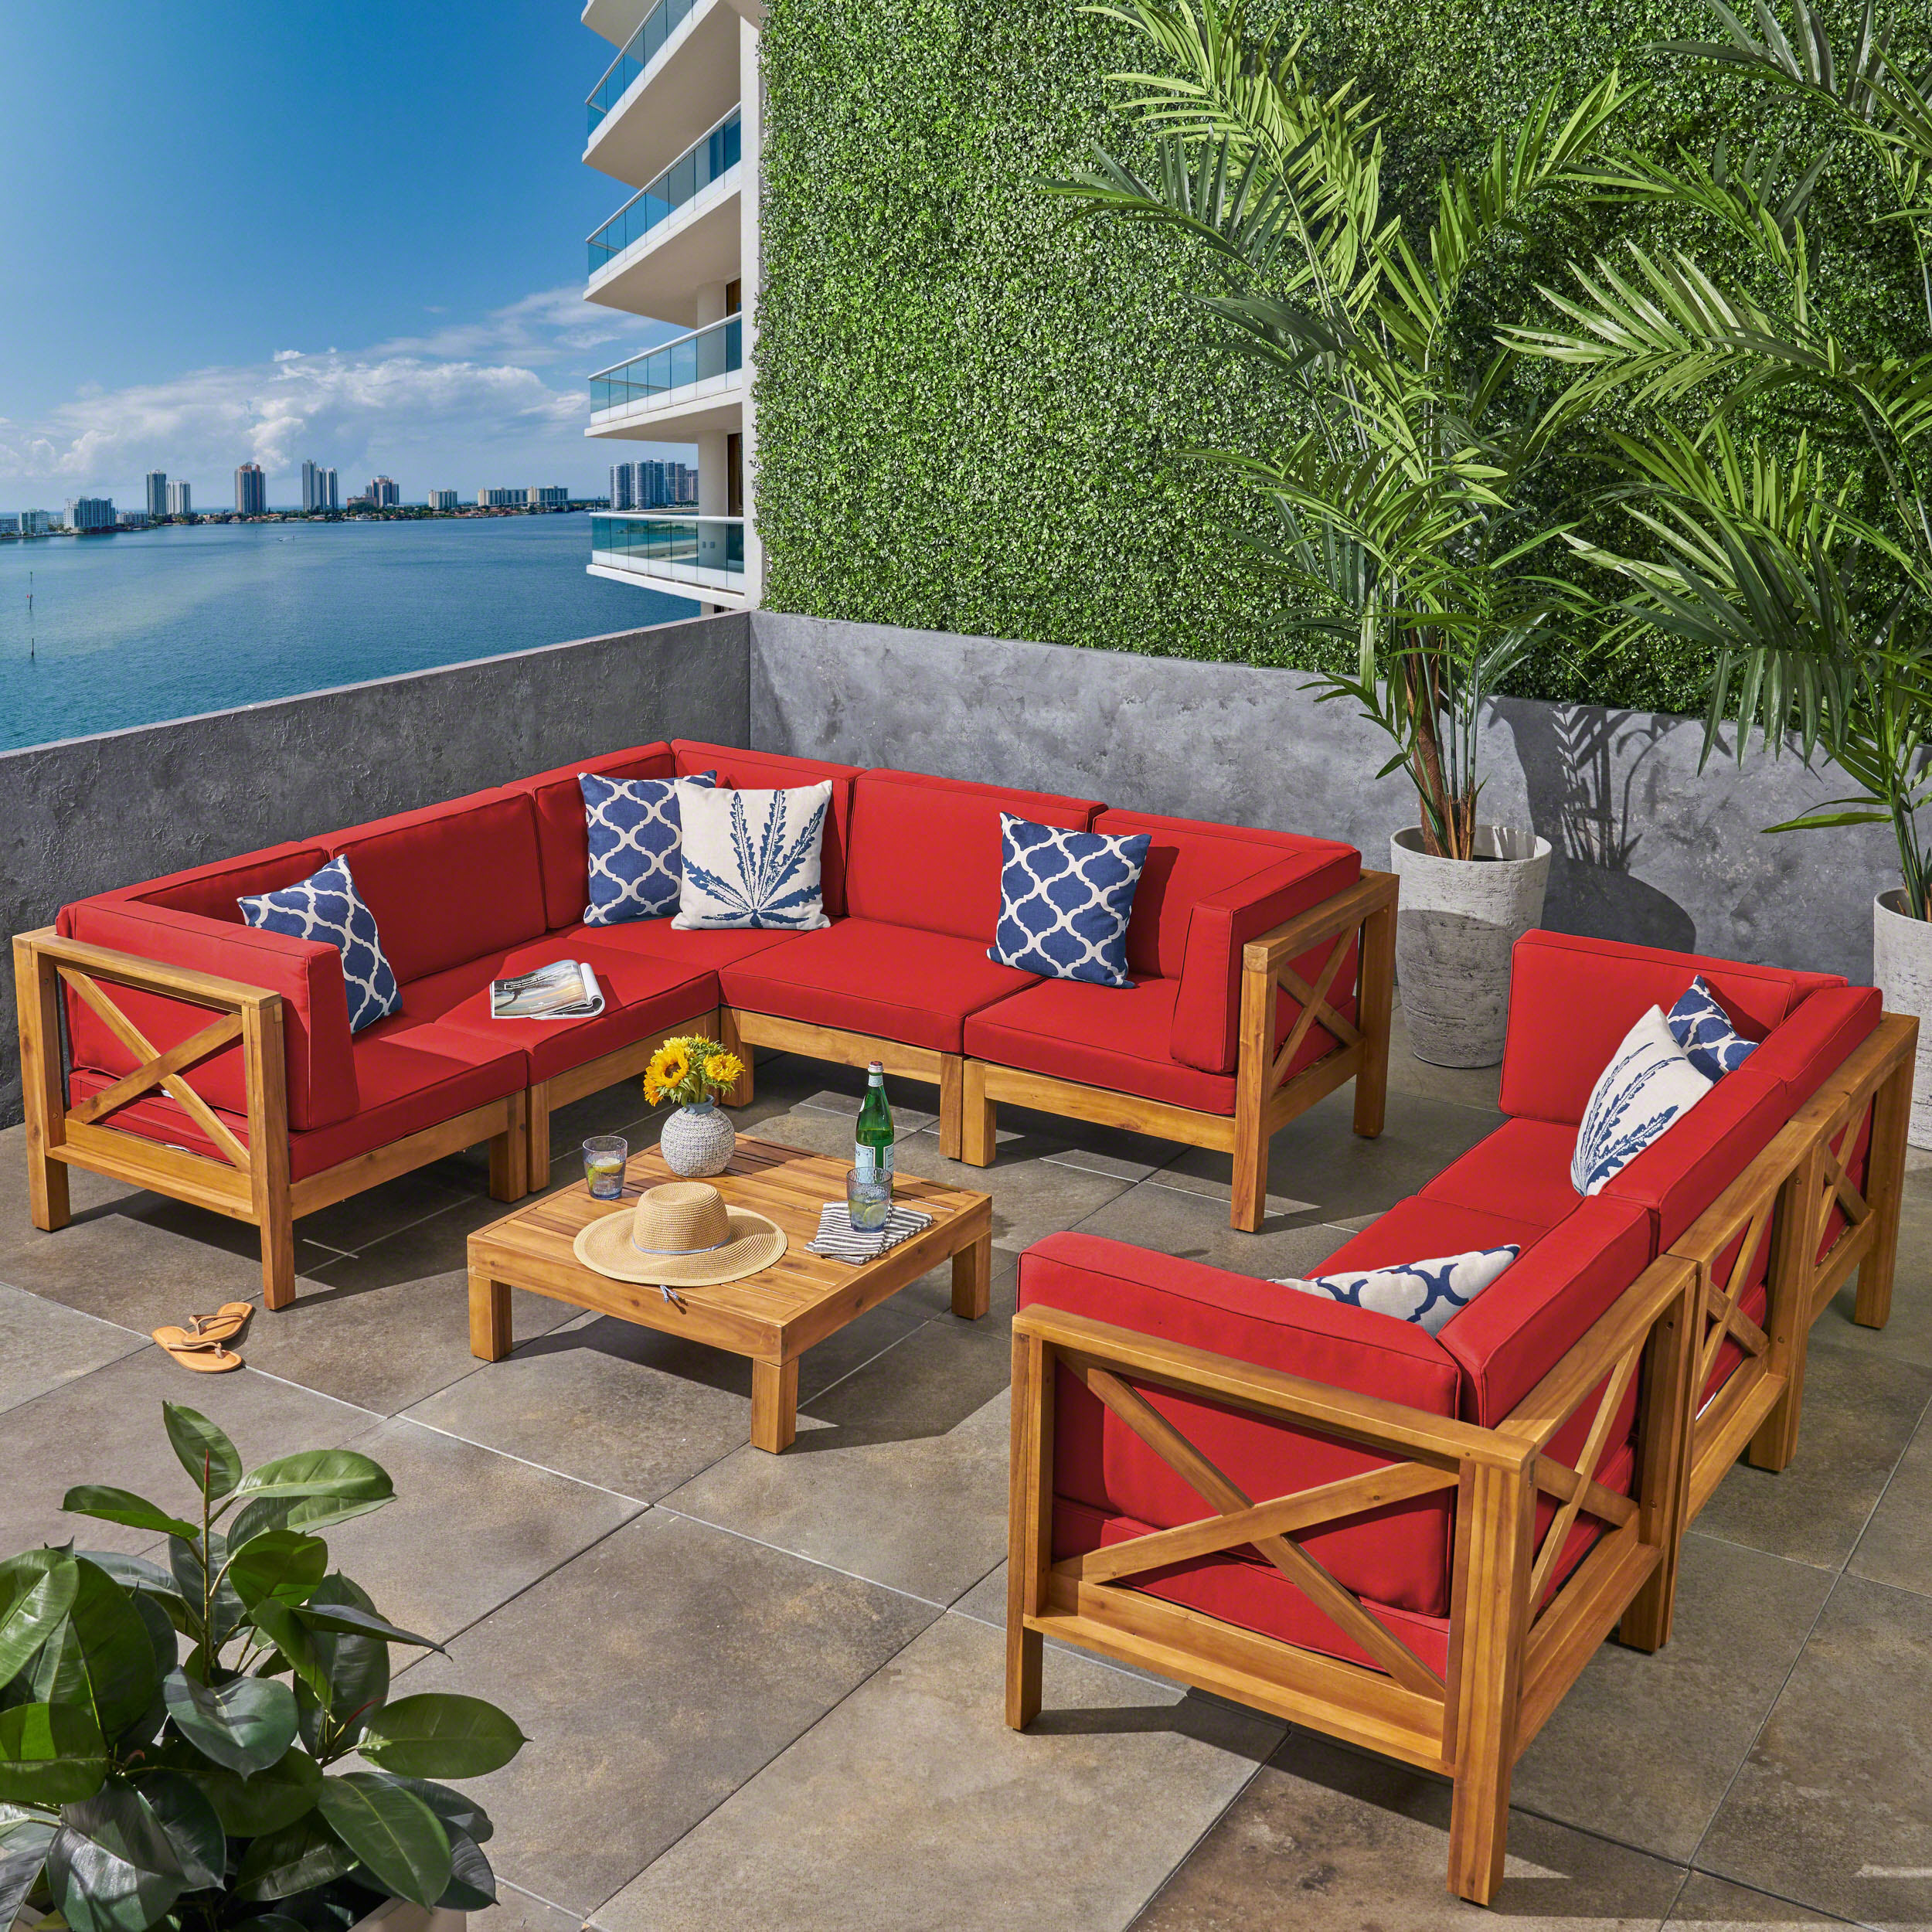 Elisha Outdoor 9 Piece Acacia Wood Sectional Sofa Set and Coffee Table with Cushions, Teak, Blue by Noble House